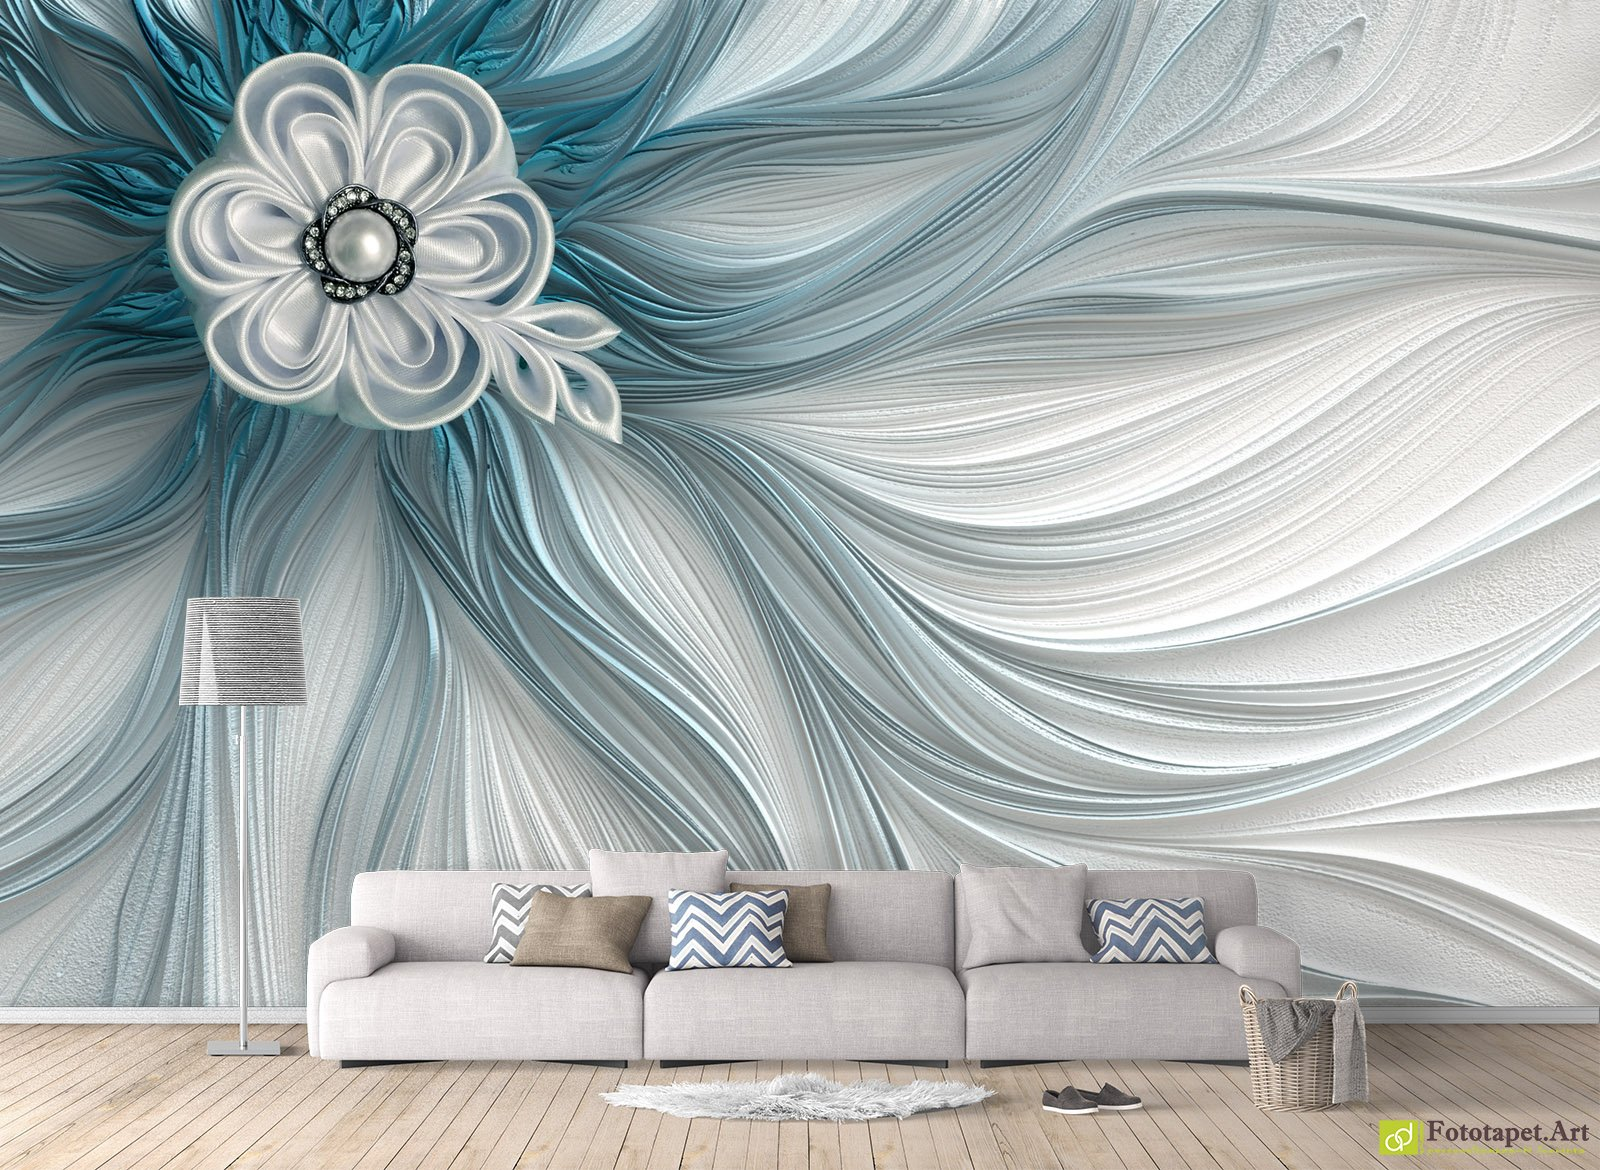 Photo Wallpaper With 3d Effect Flower With 3d Effect Fototapet Art Make The Most Of Your Walls And Personalize Room